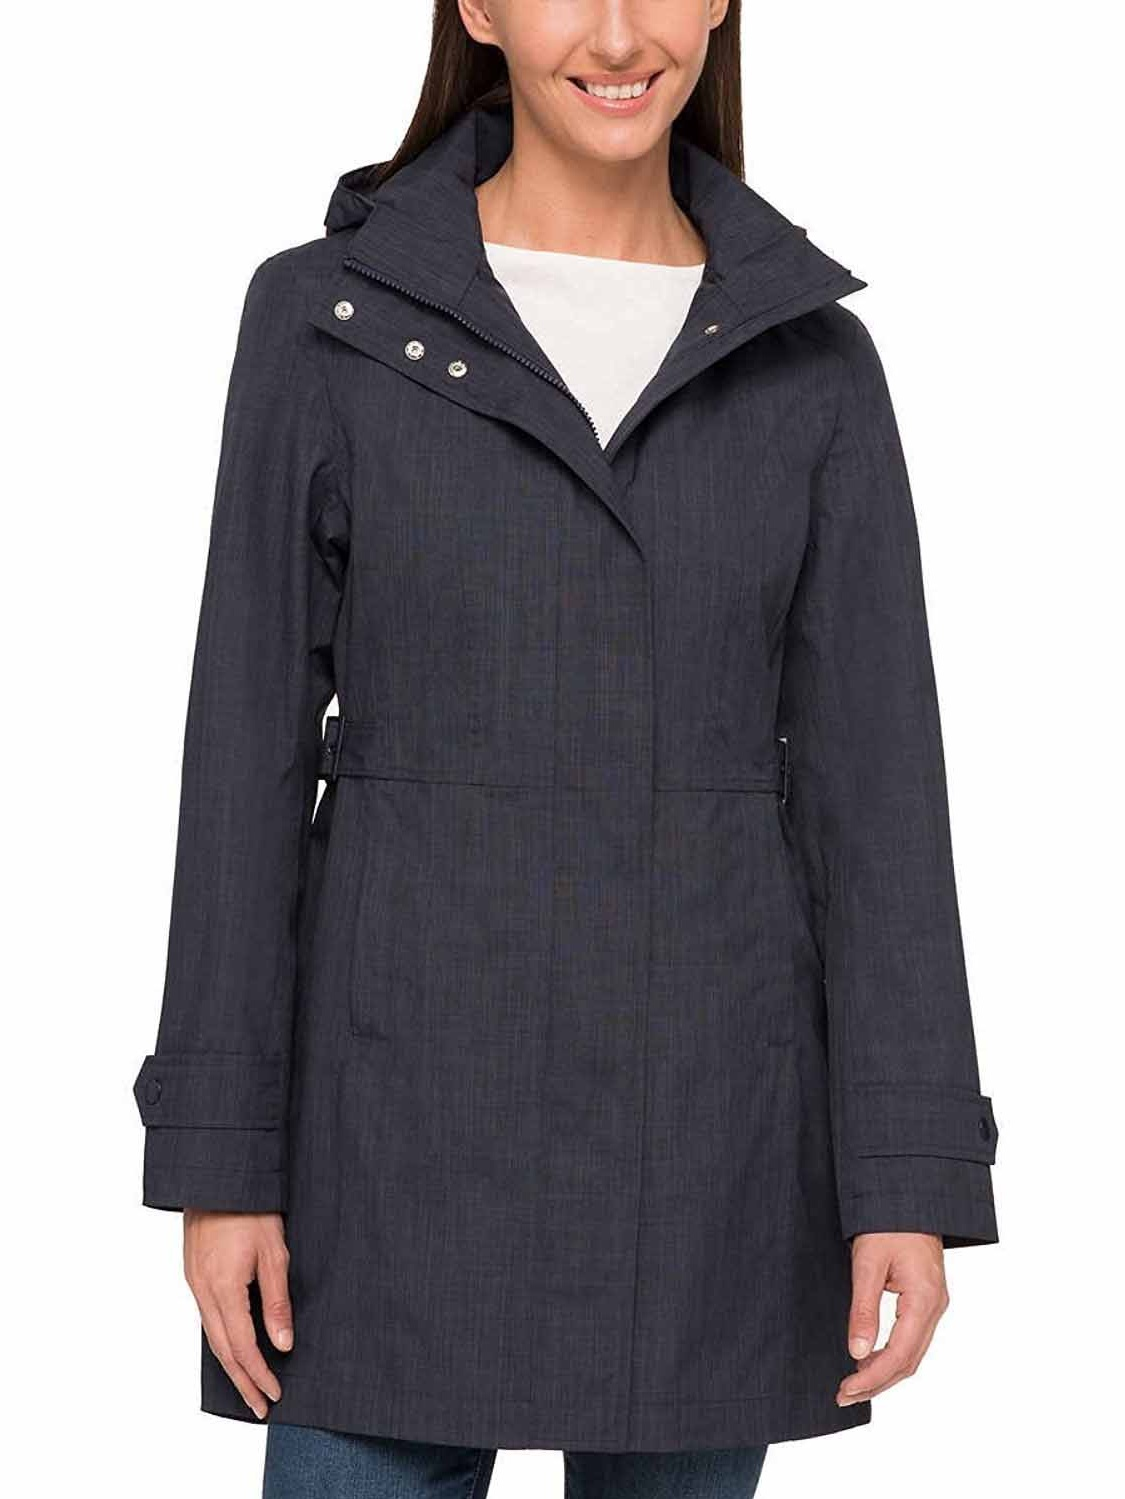 fe7b3513e Kirkland Signature Womens Waterproof Trench Coat (Navy, Small)